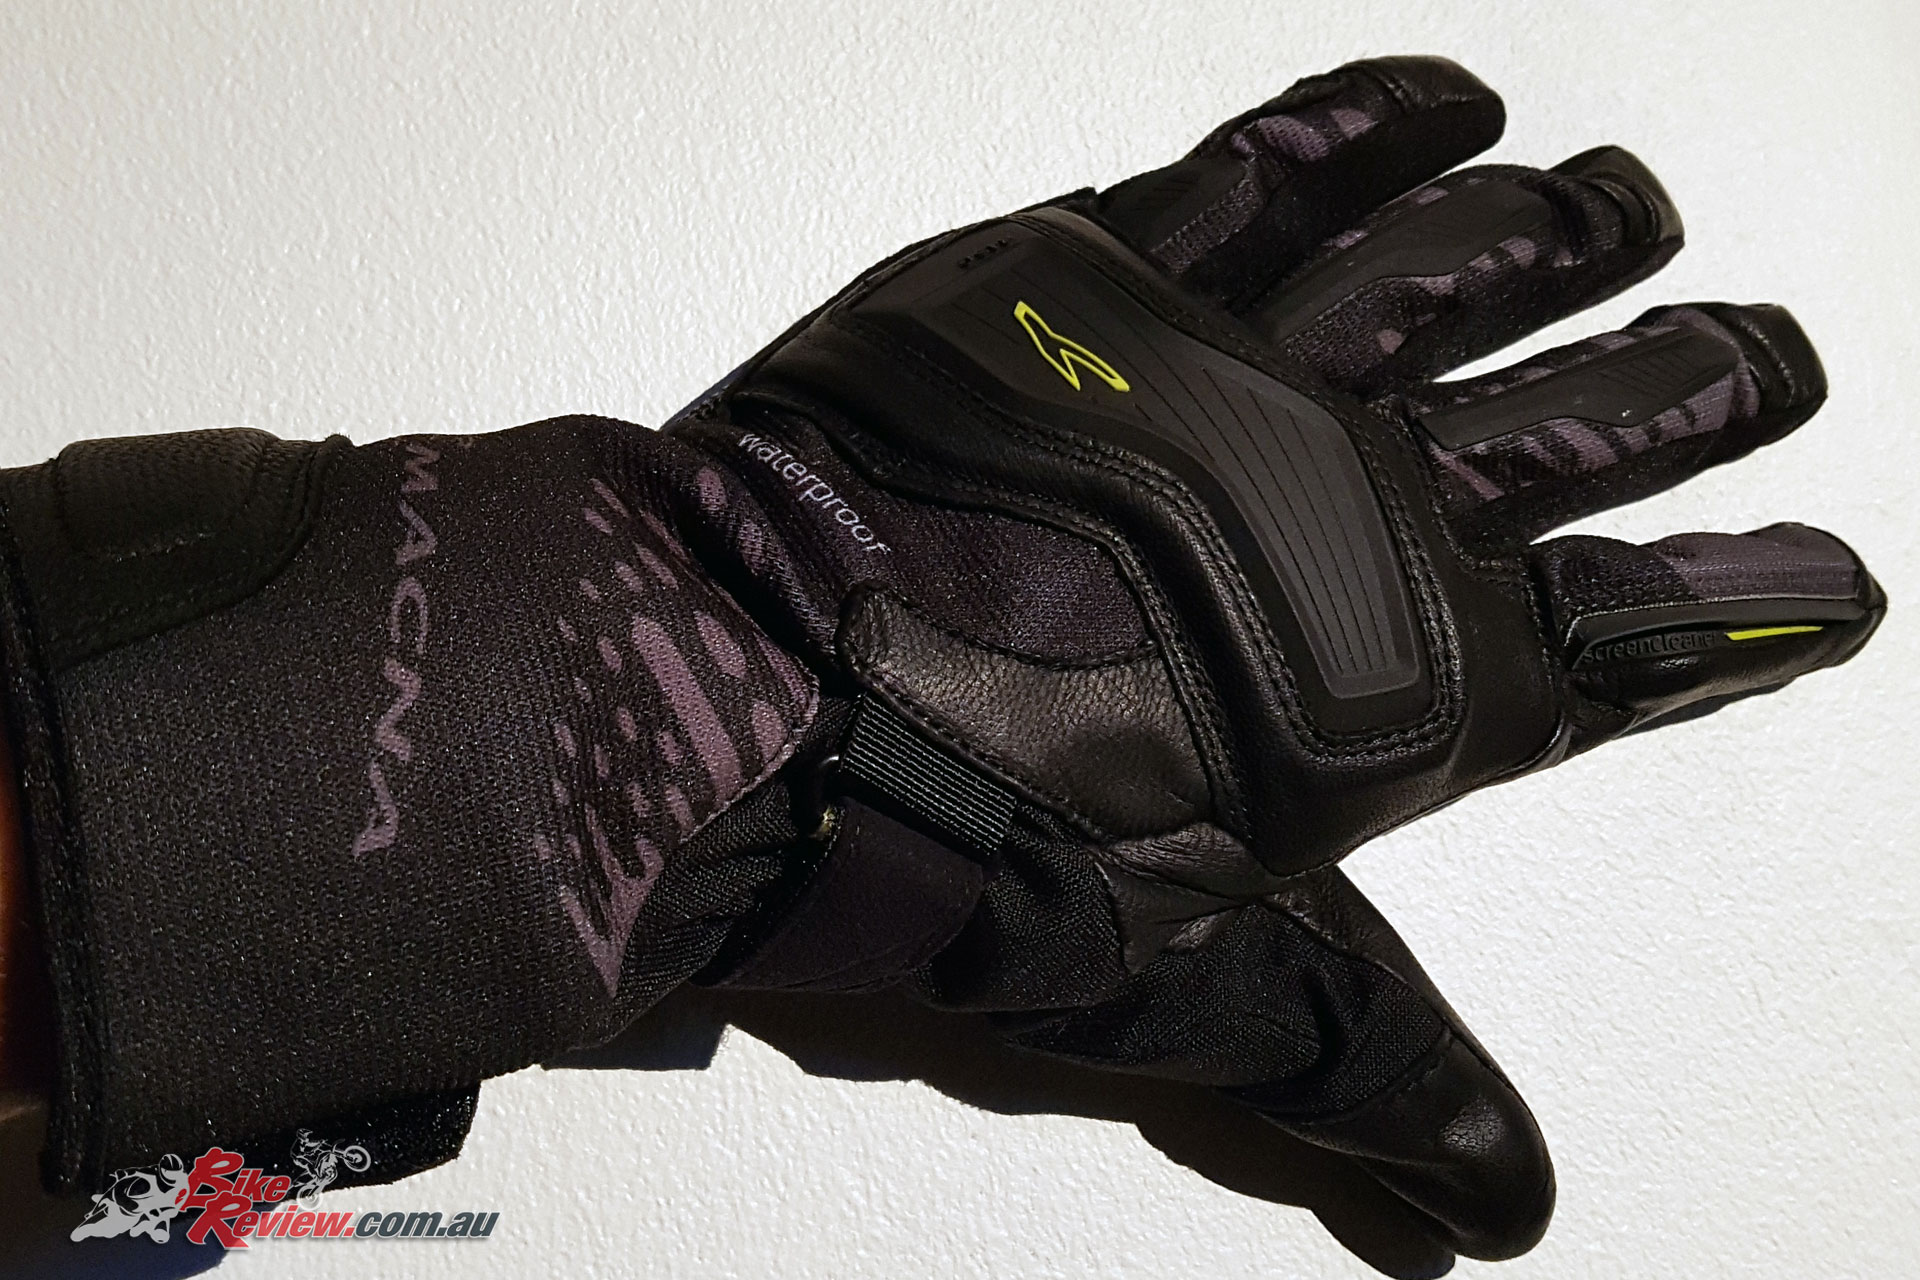 The Macna Talon glove offers good comfort and is a lightweight glove, ideal for moderate weather and those who prefer lighter gloves with good feel